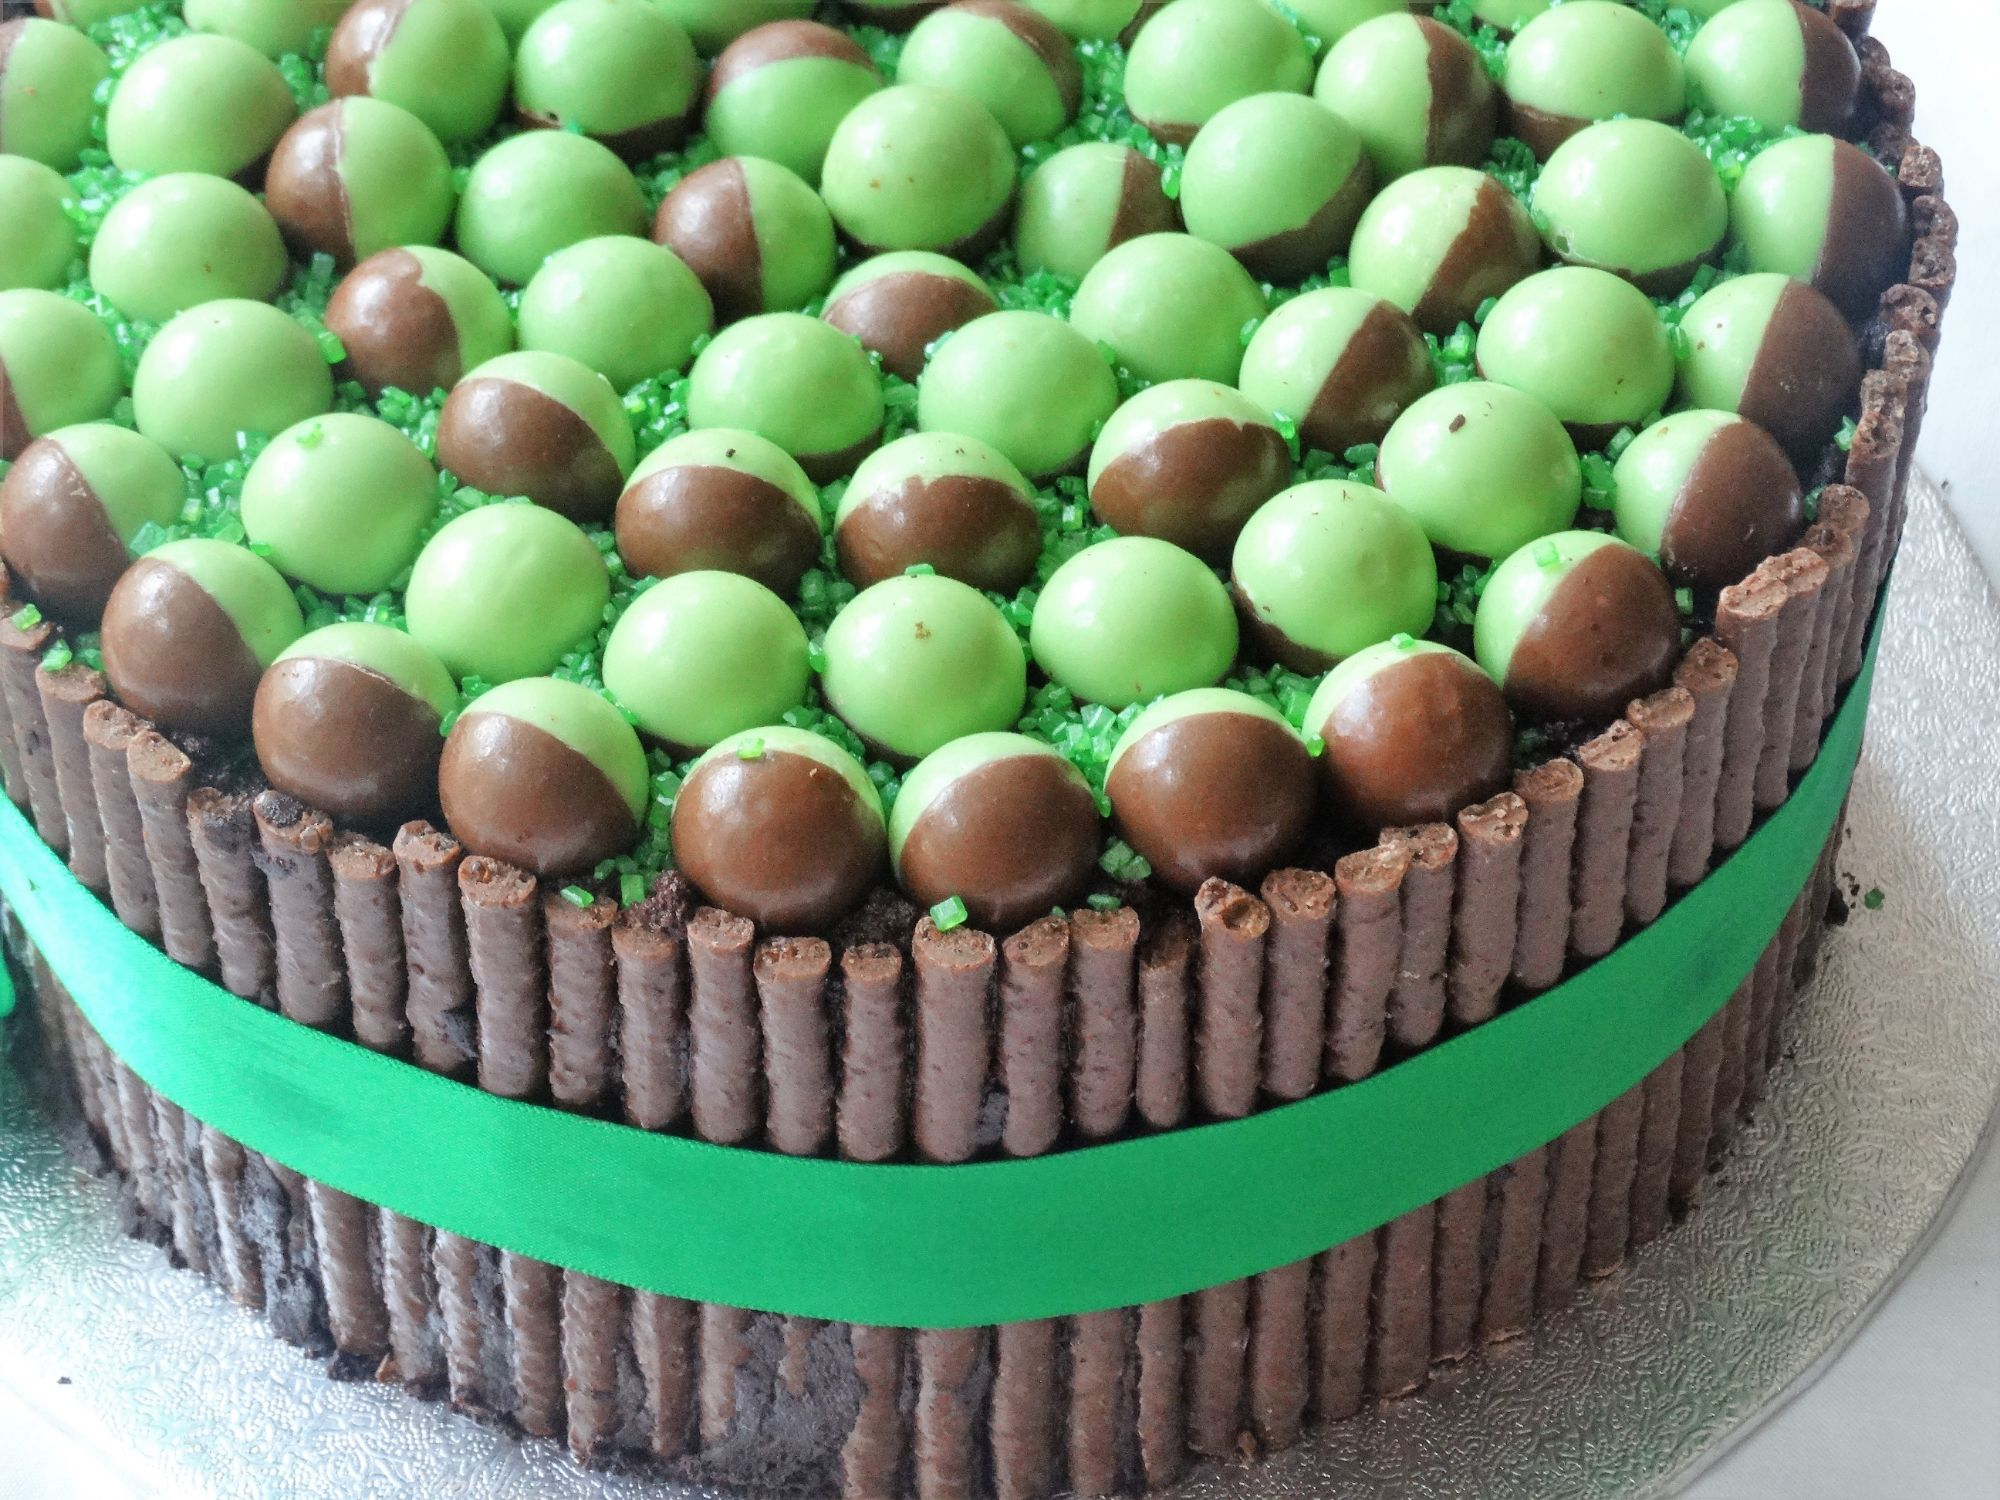 Mint Aero Bubbles Layer Cake